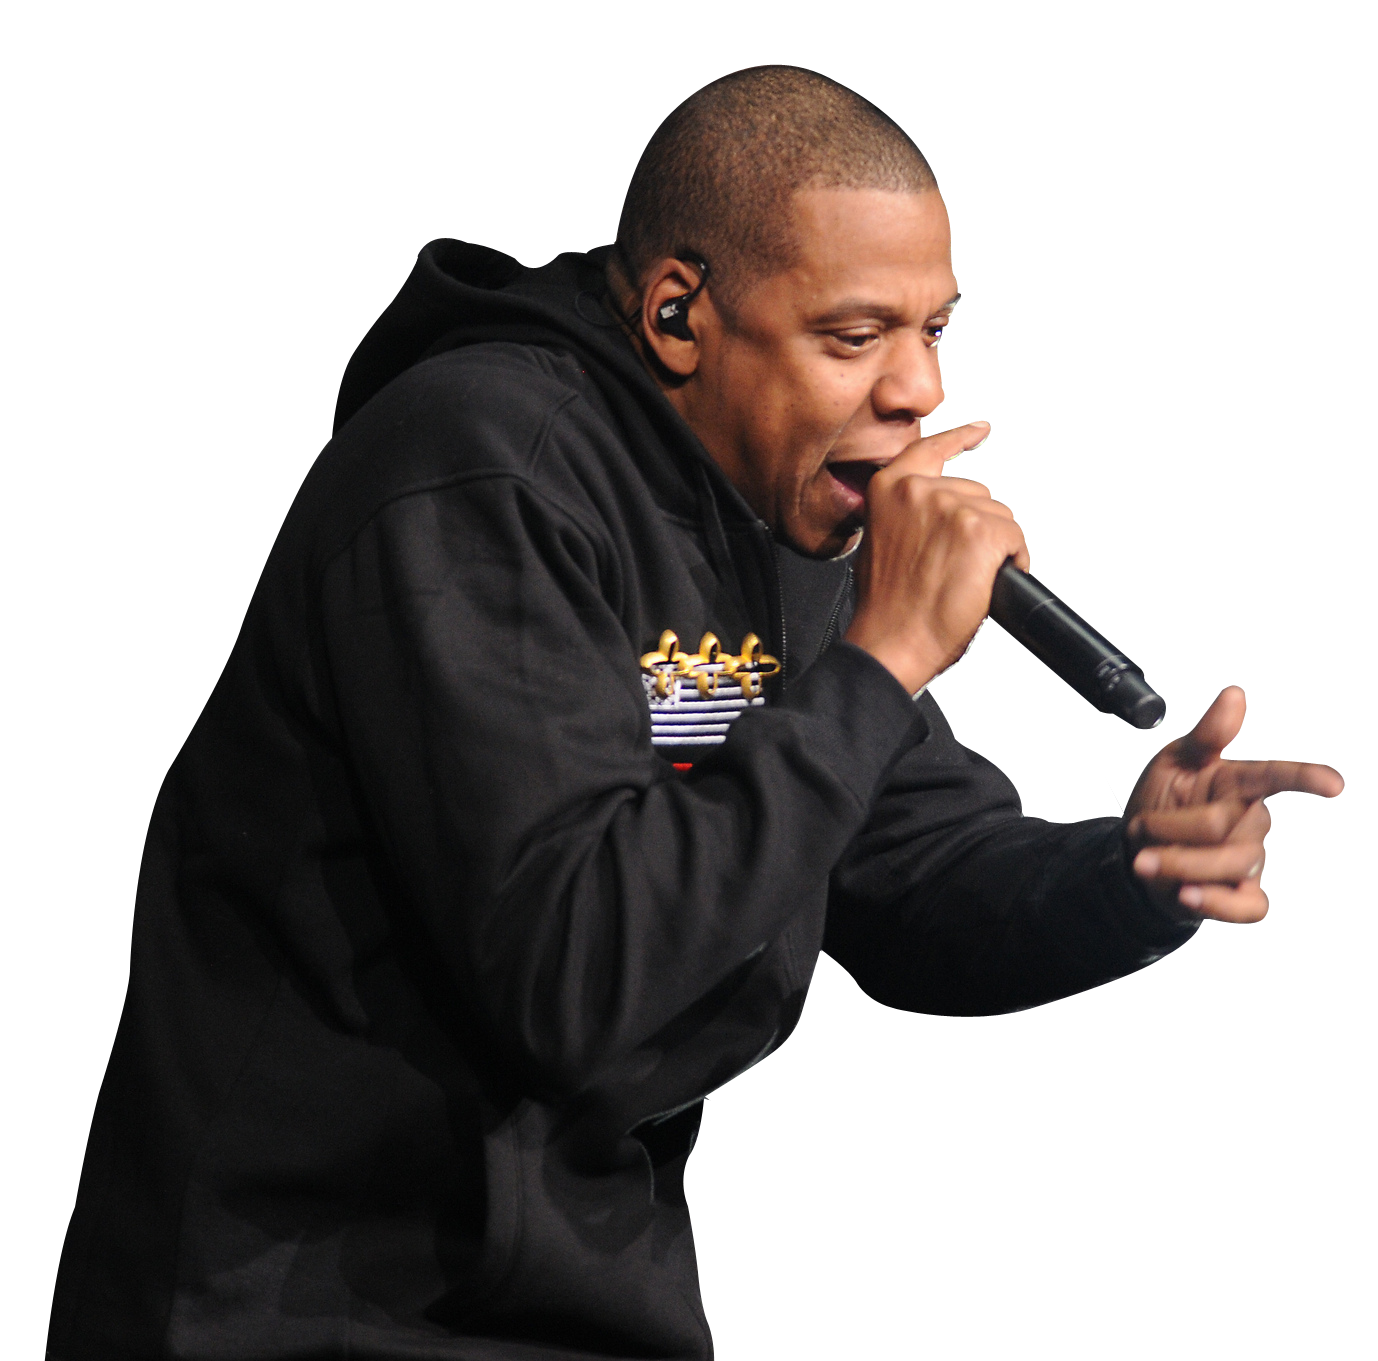 Download Jay Z PNG Clipart For Designing Projects.